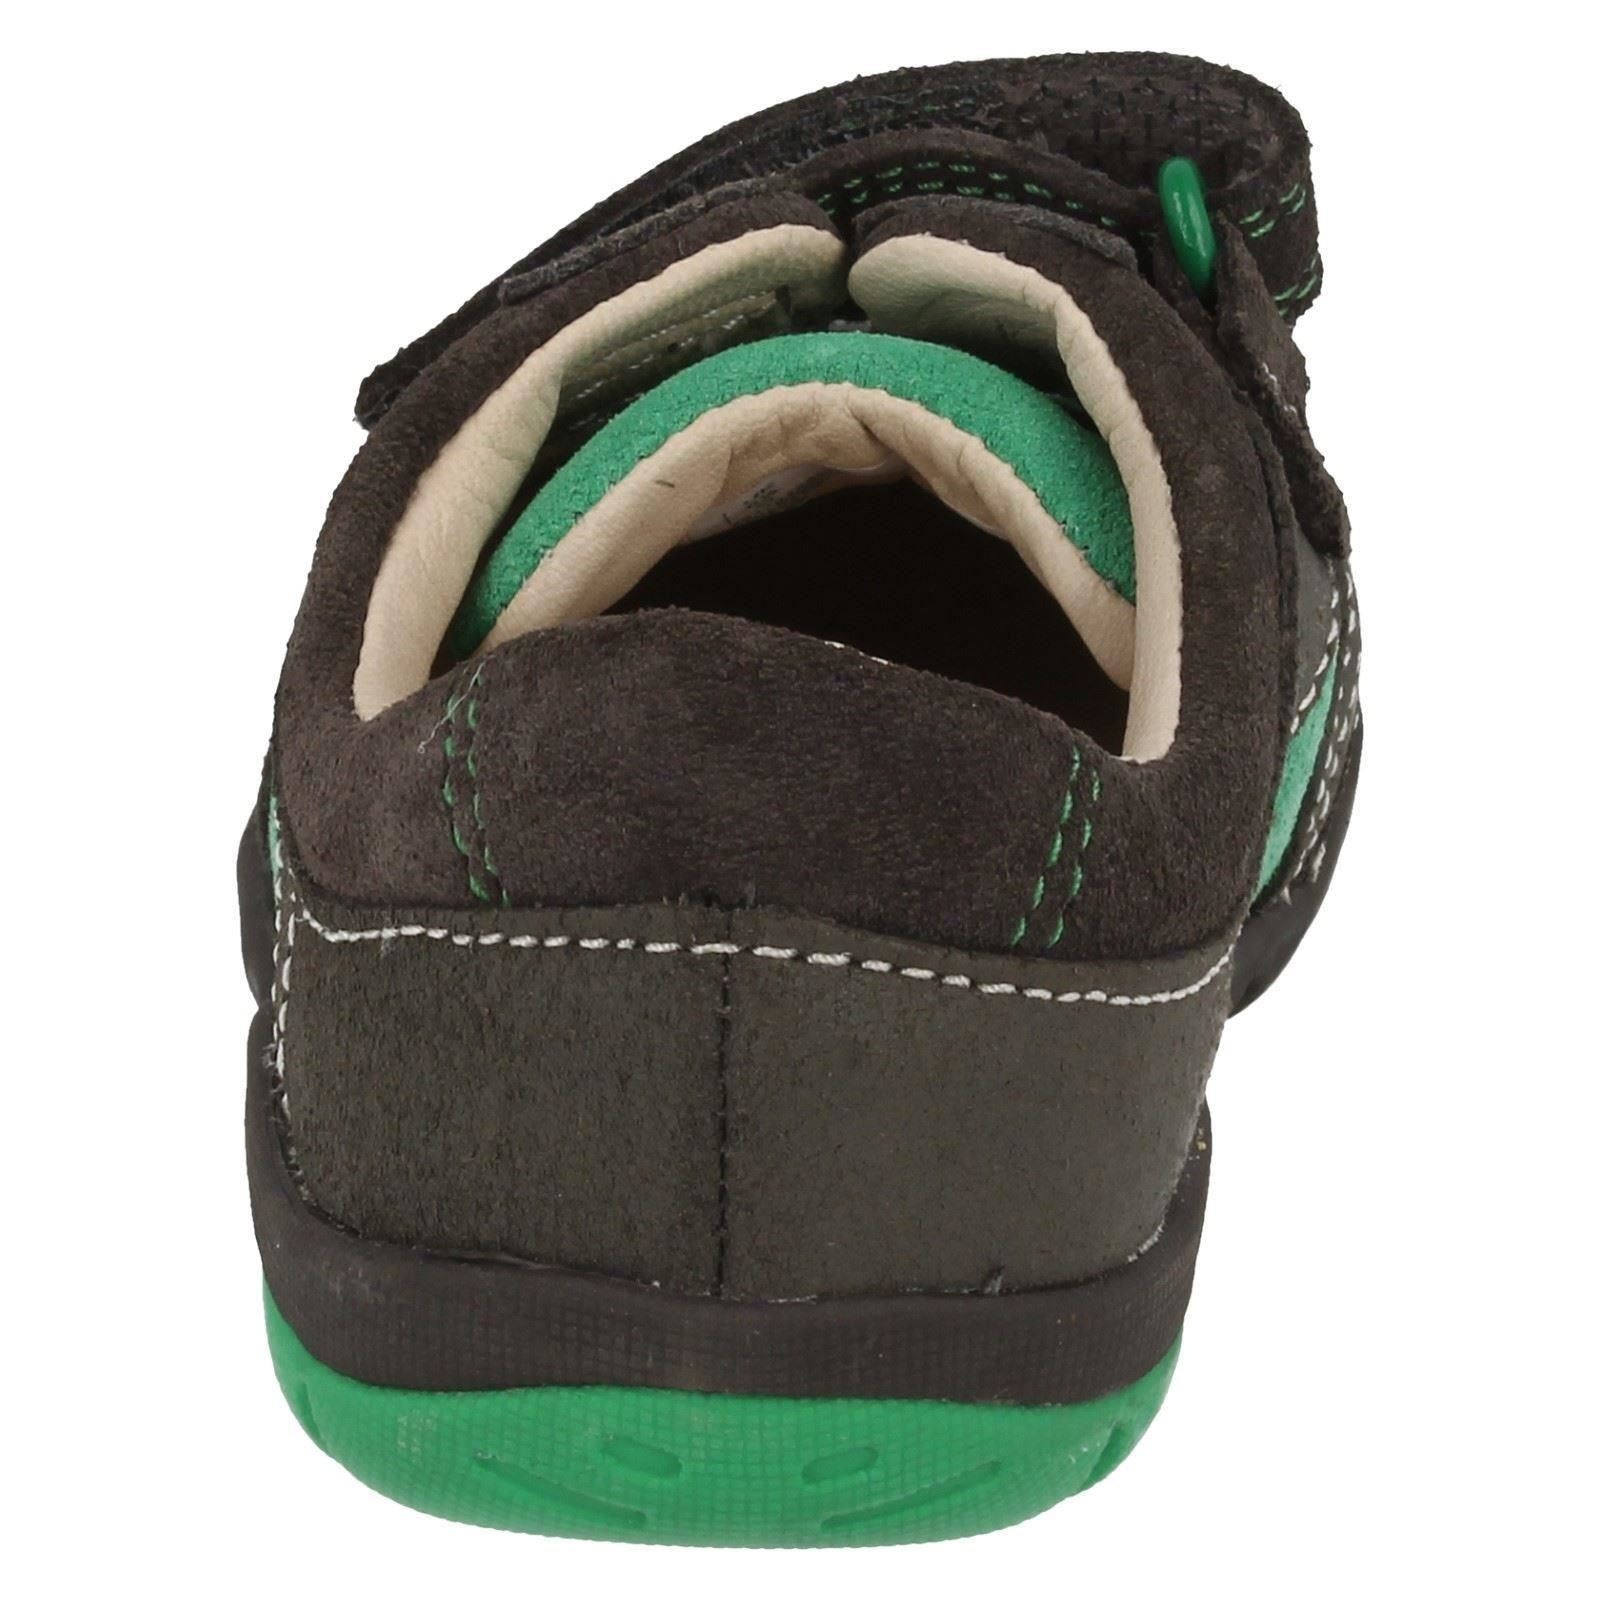 Boys Clarks Casual First Shoes Softly Lee